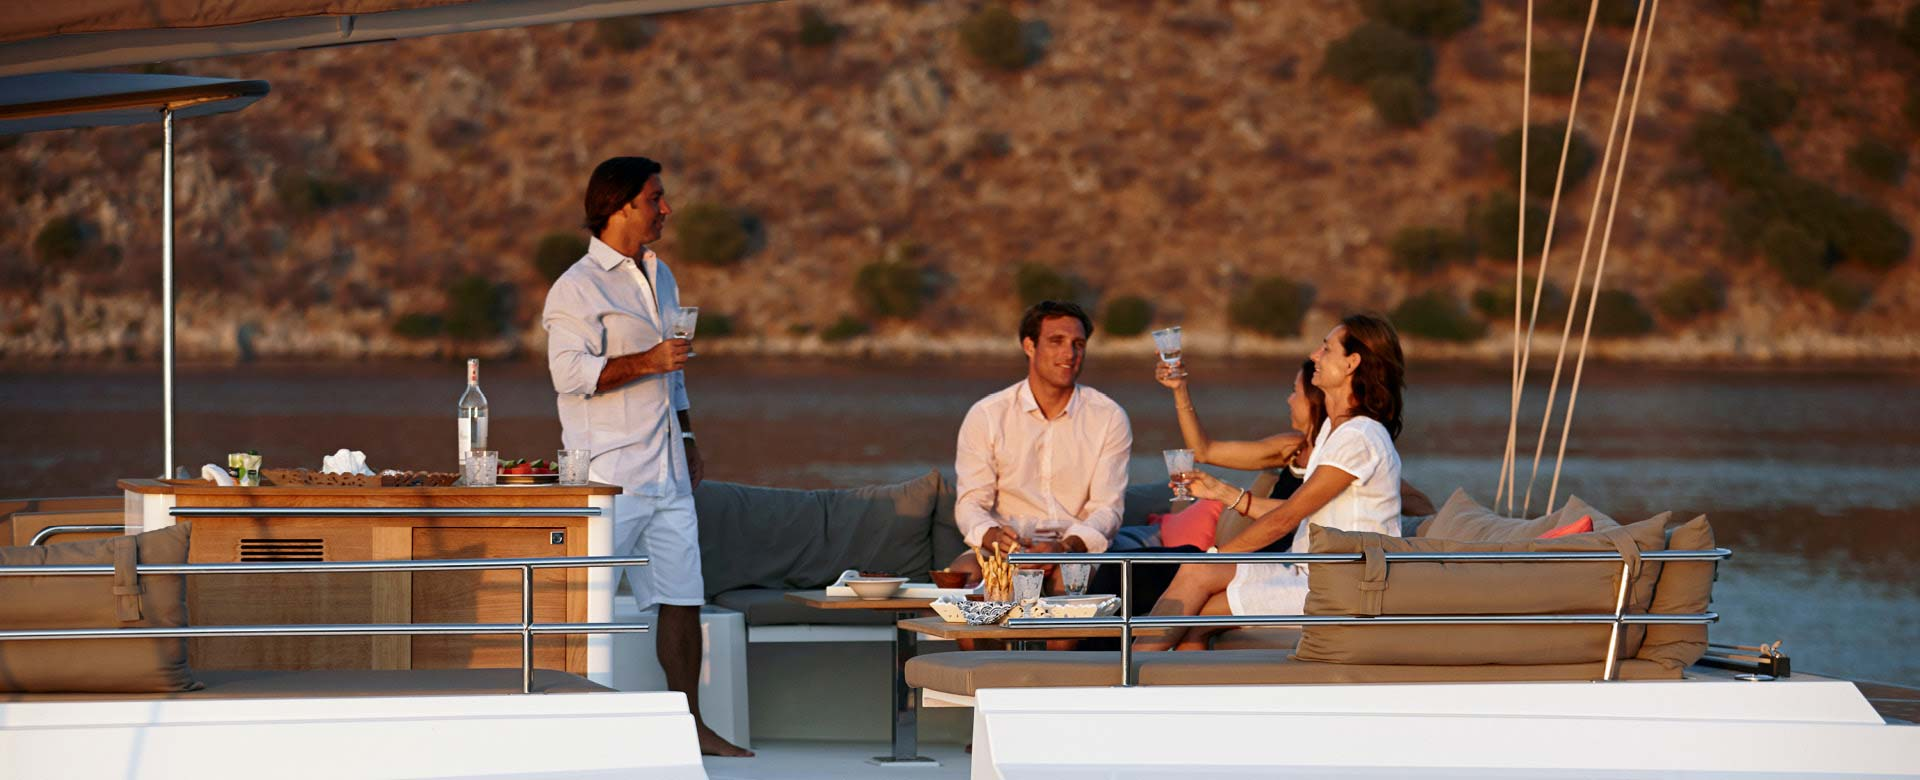 People enjoying their luxury yacht ownership